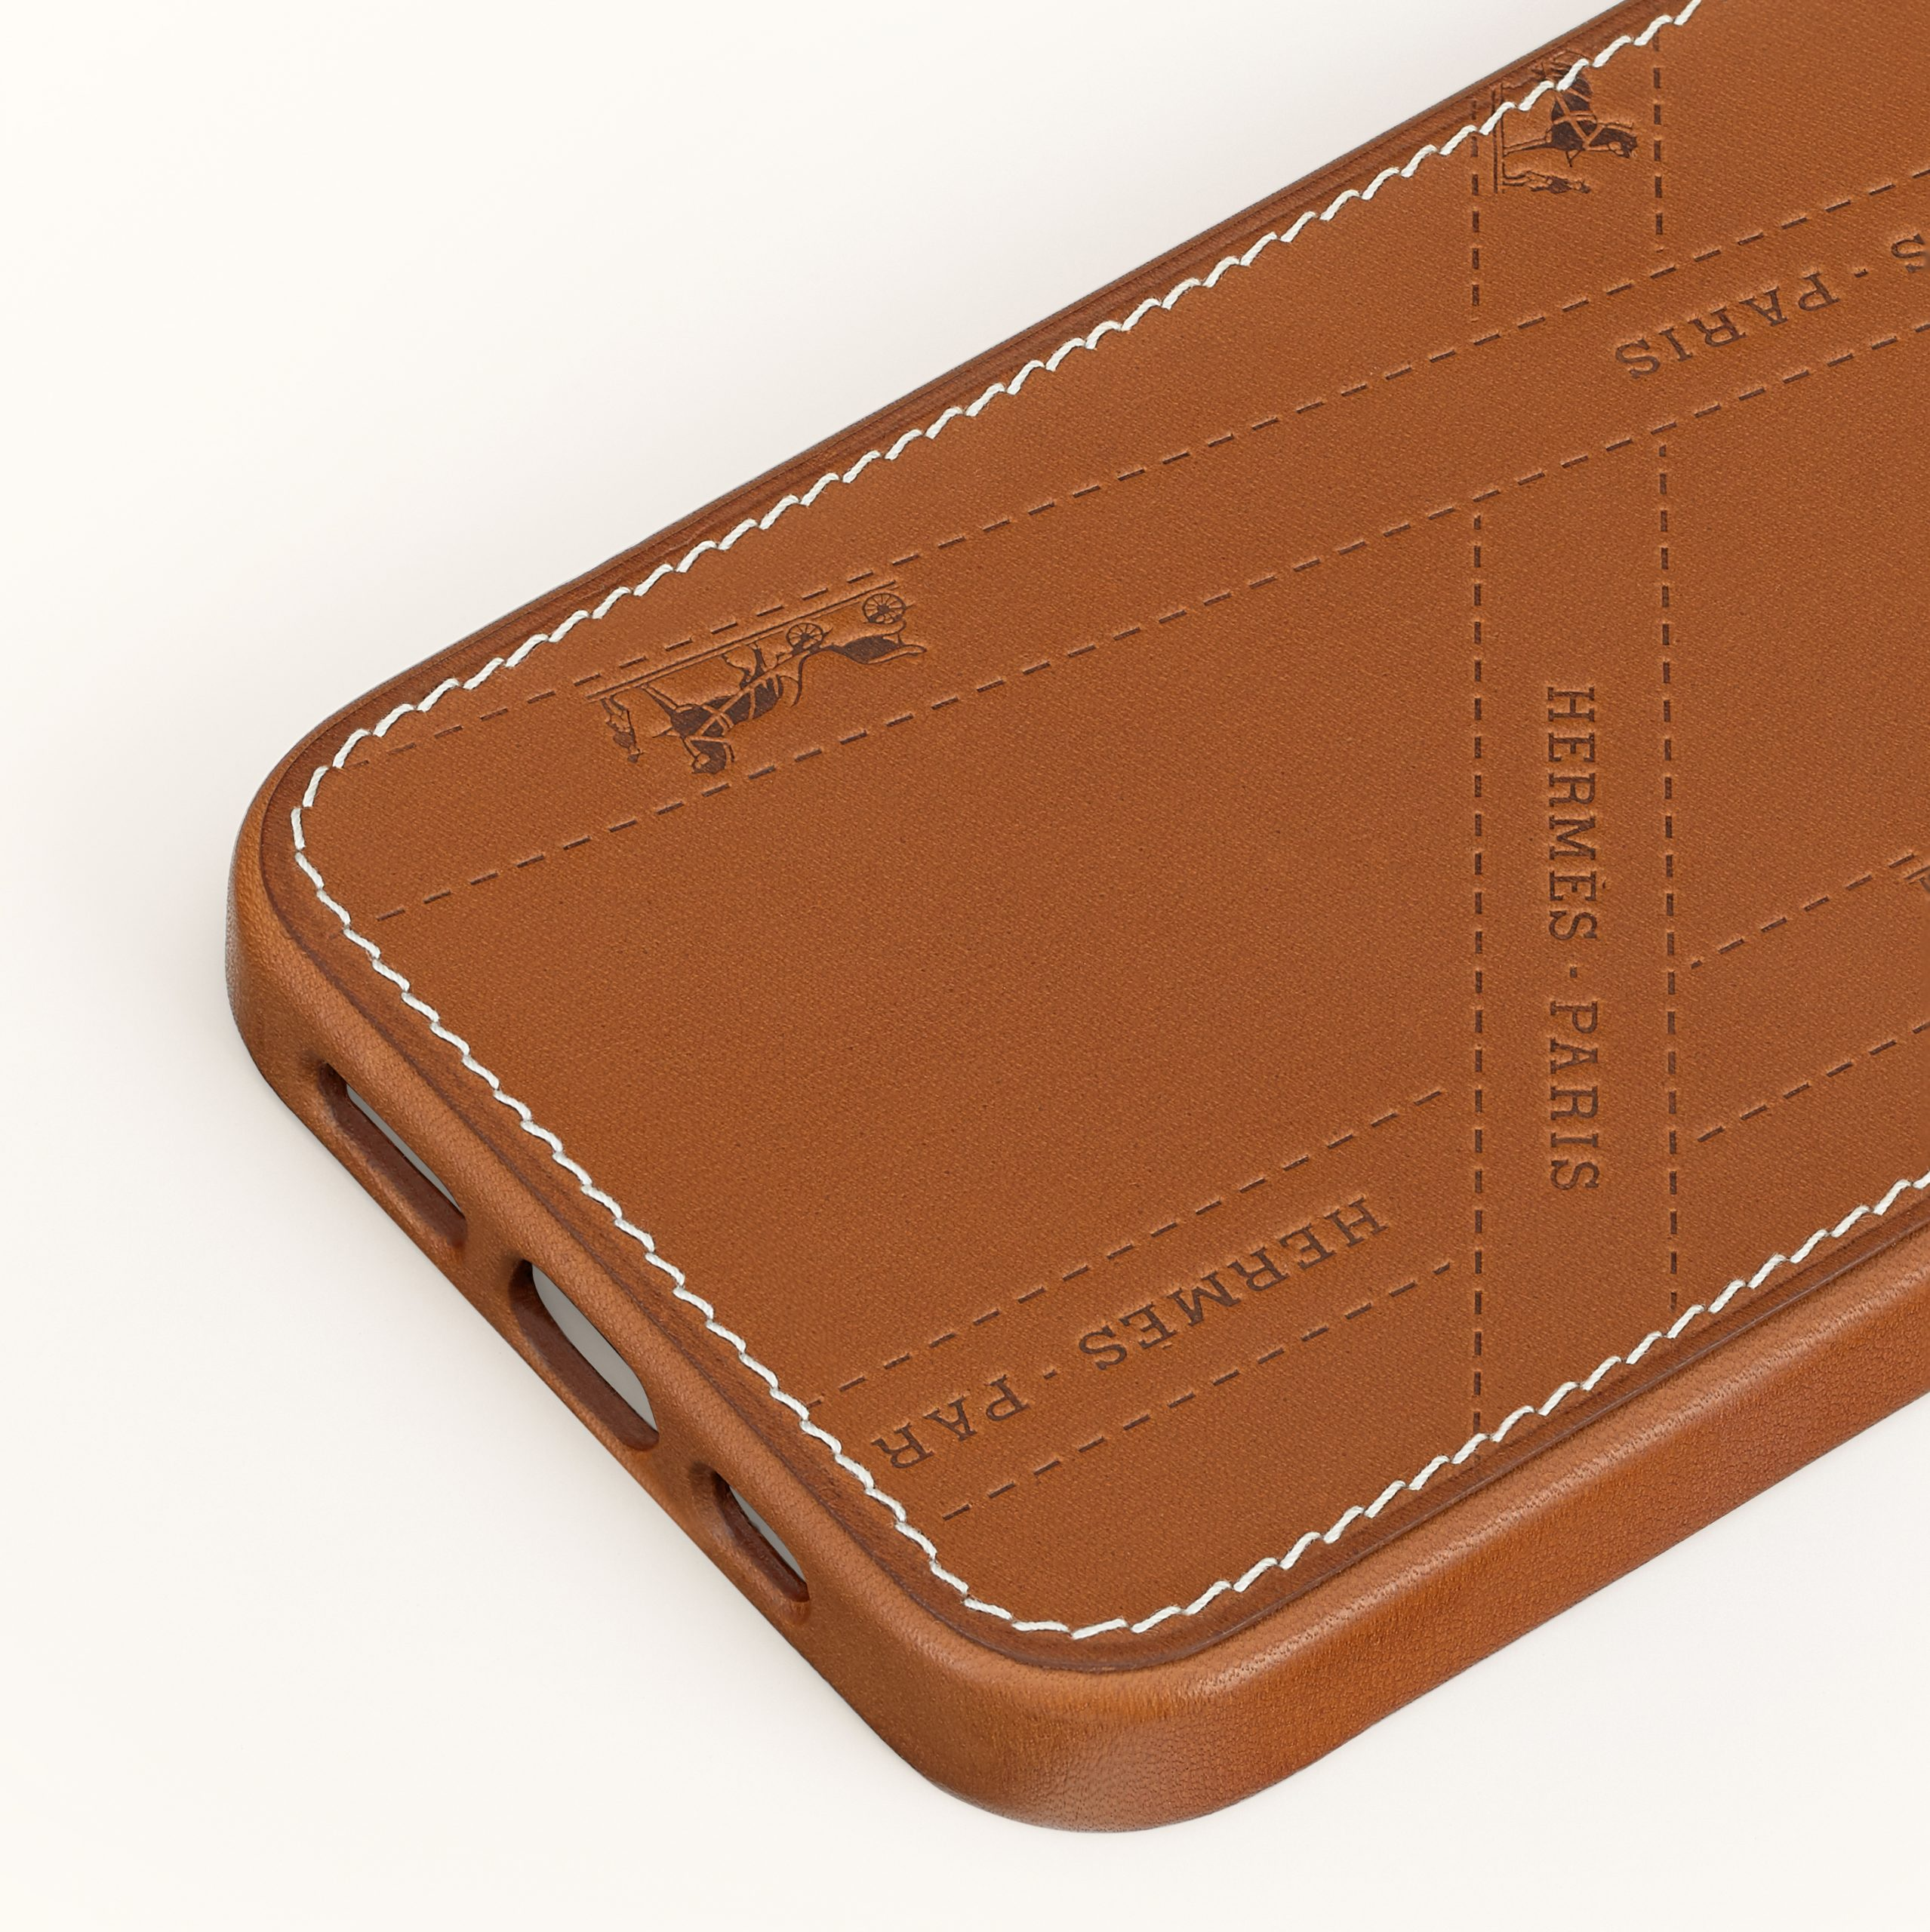 Apple and Hermès introduce the new Apple AirTag Hermès